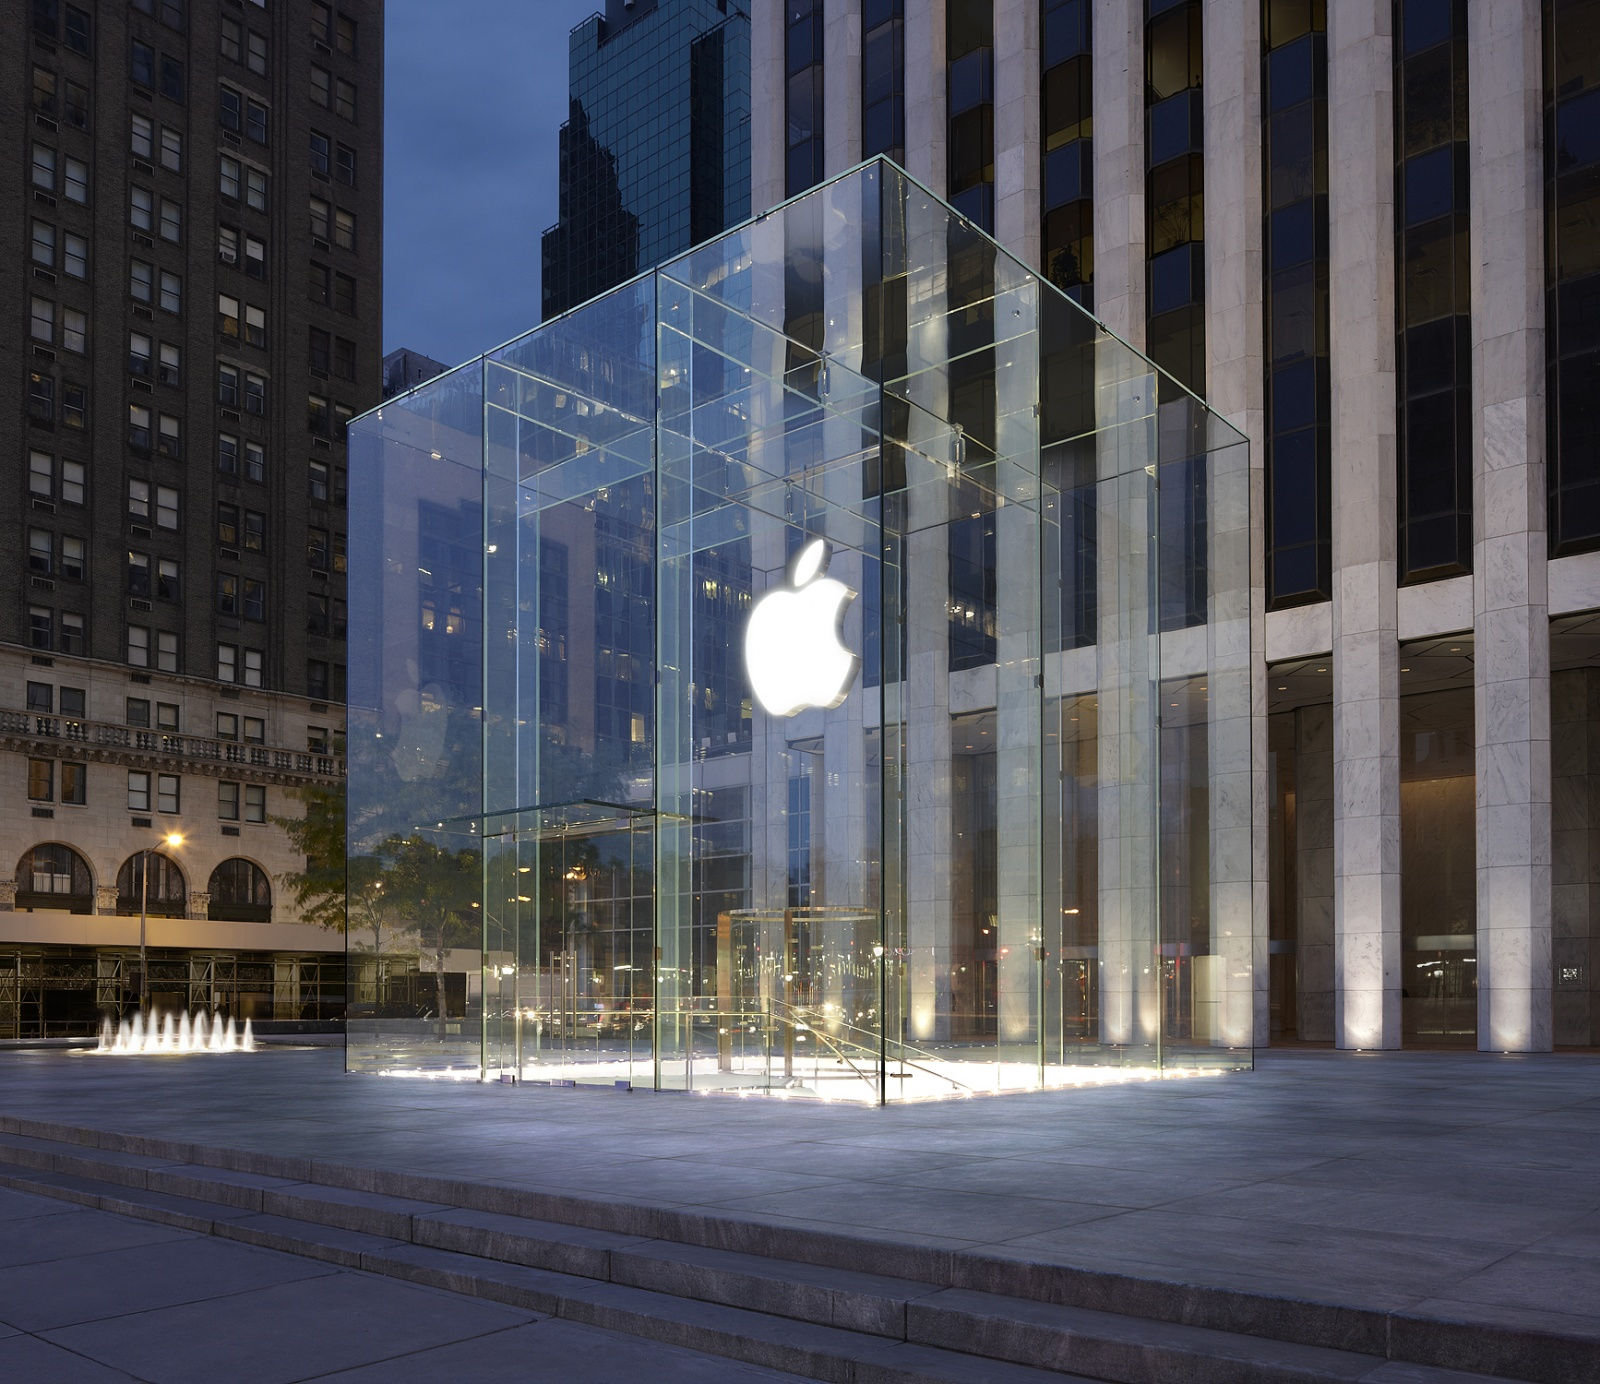 What does Jony Ive's departure mean for Apple?